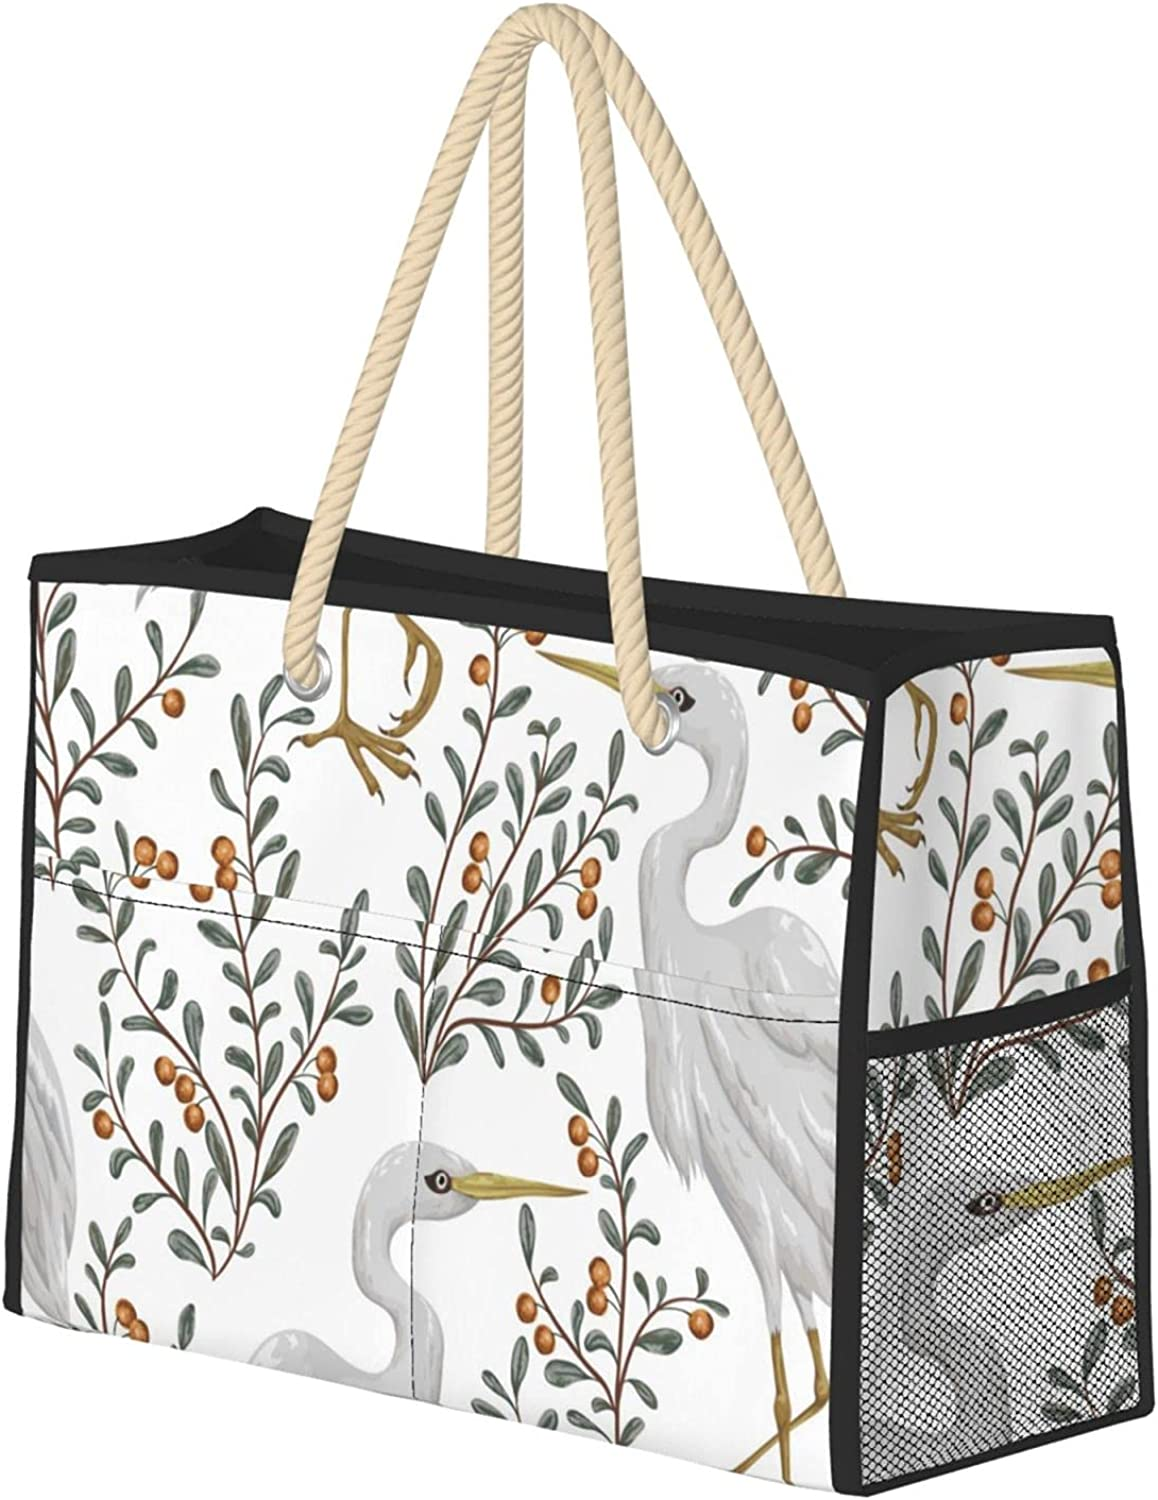 Heron Bird And Cranberry Plant Fixed price for sale Bag Utilit Beach Travel Ranking TOP11 Women